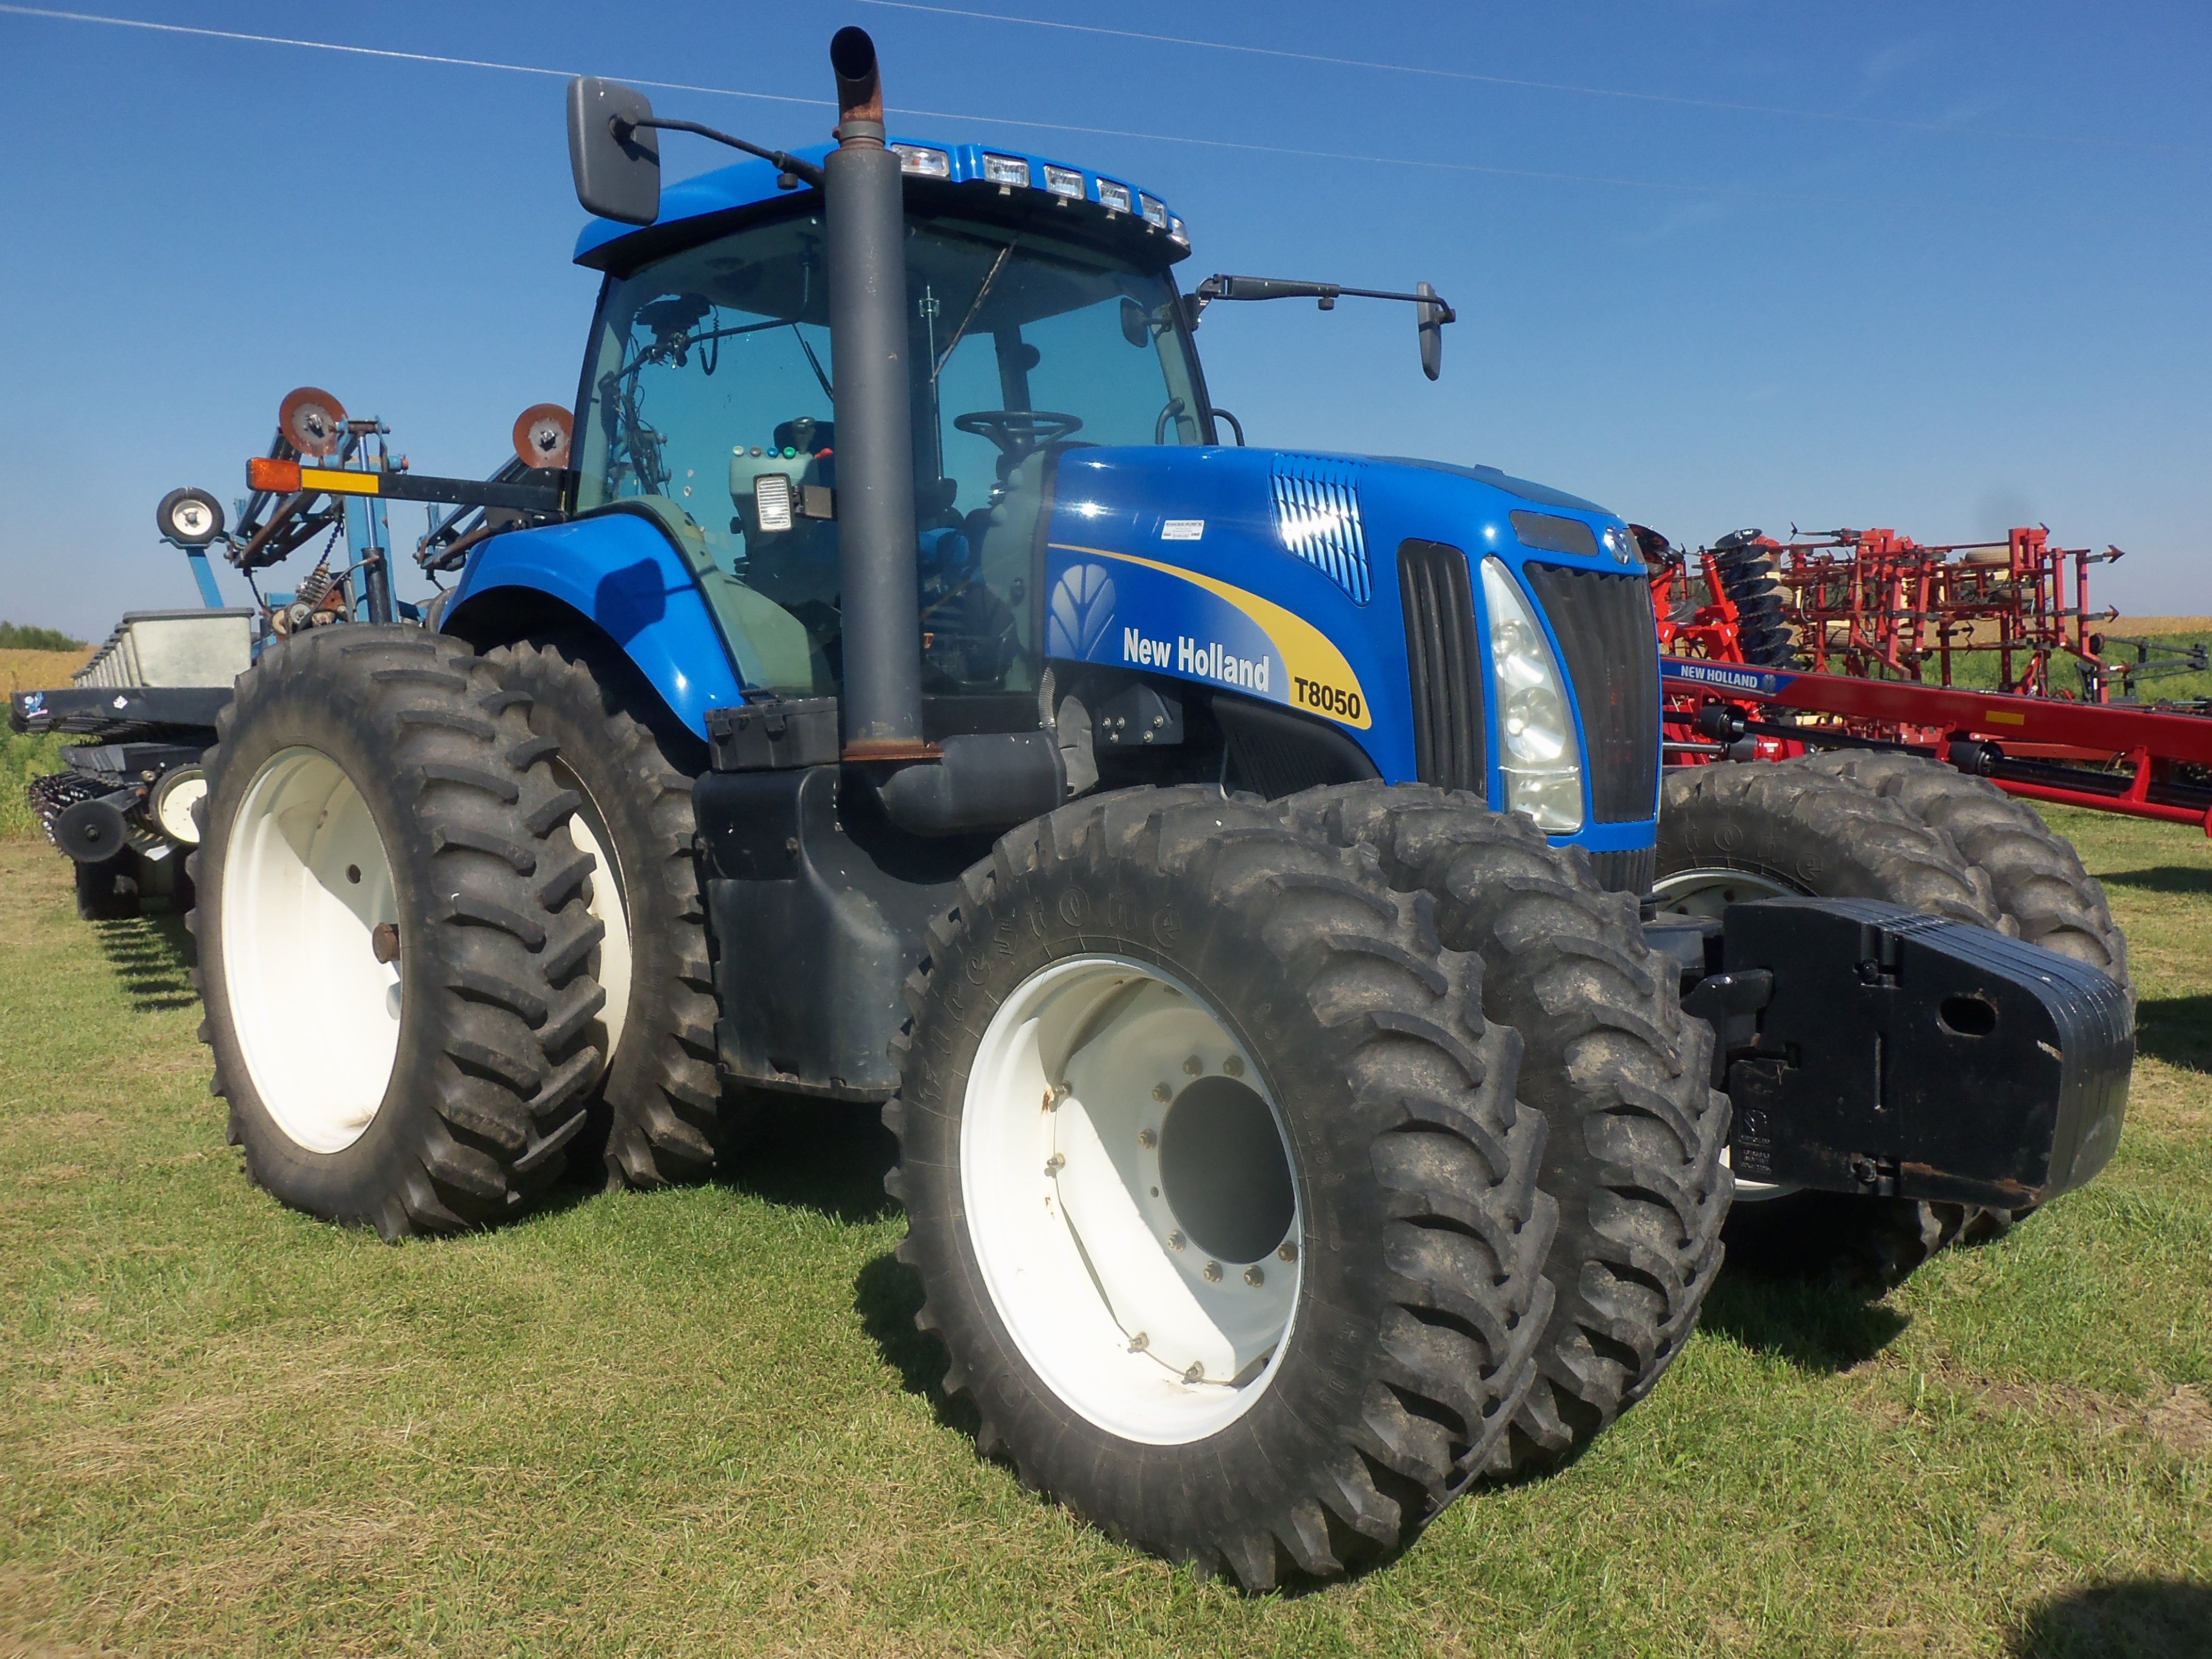 New Holland T8050 New Holland Agriculture New Holland Tractor New Holland Ford